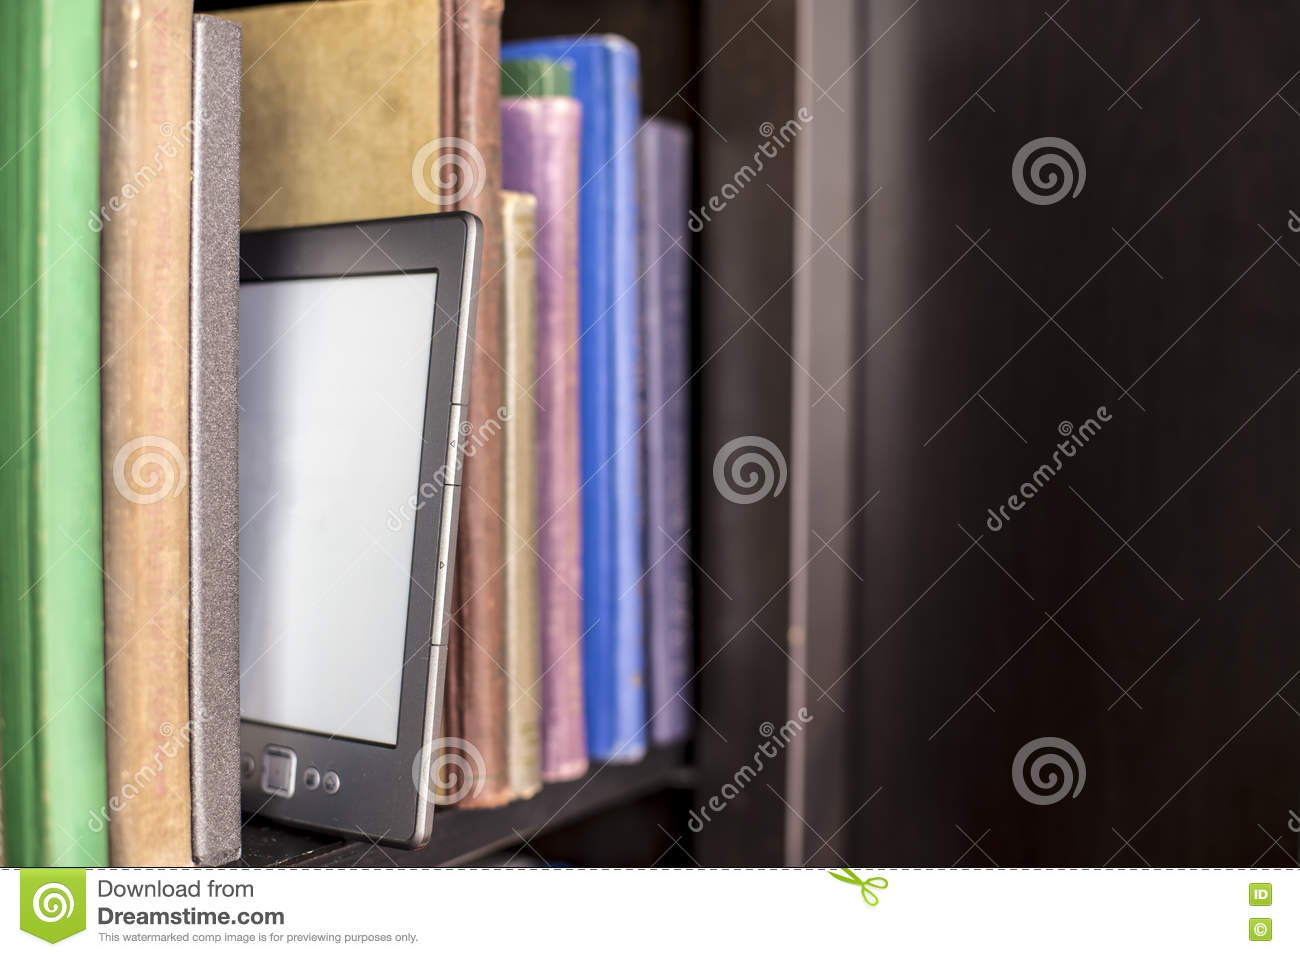 E Book Stands On A Wooden Bookshelf Filled With Old Paper Books